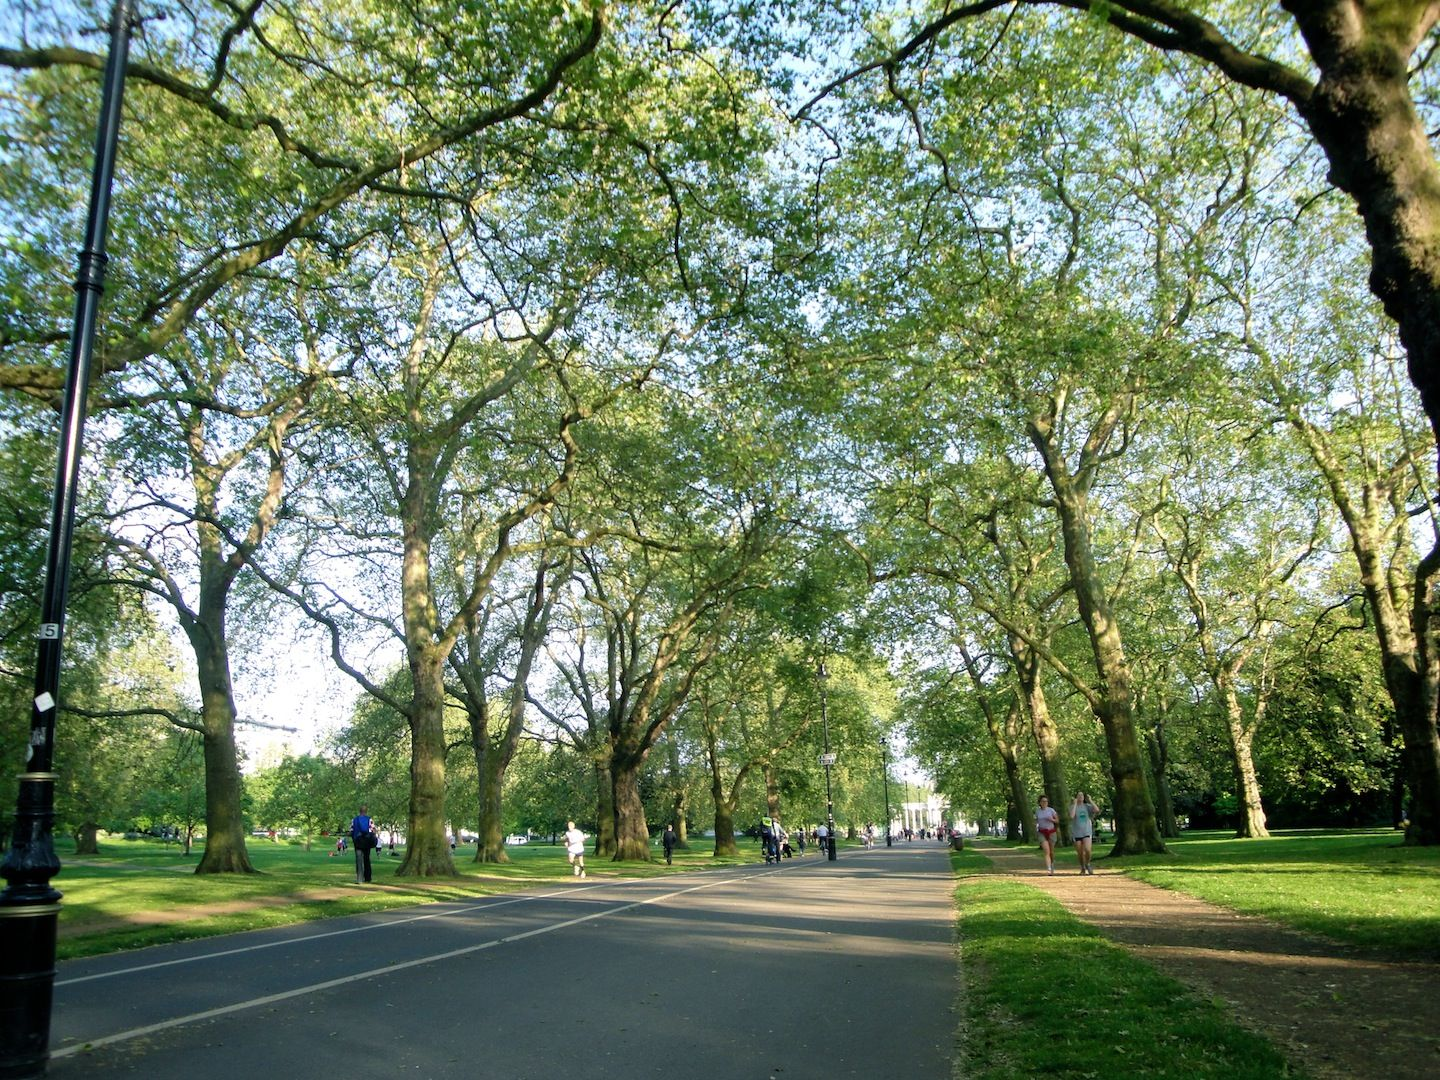 Day 9: Hyde Park